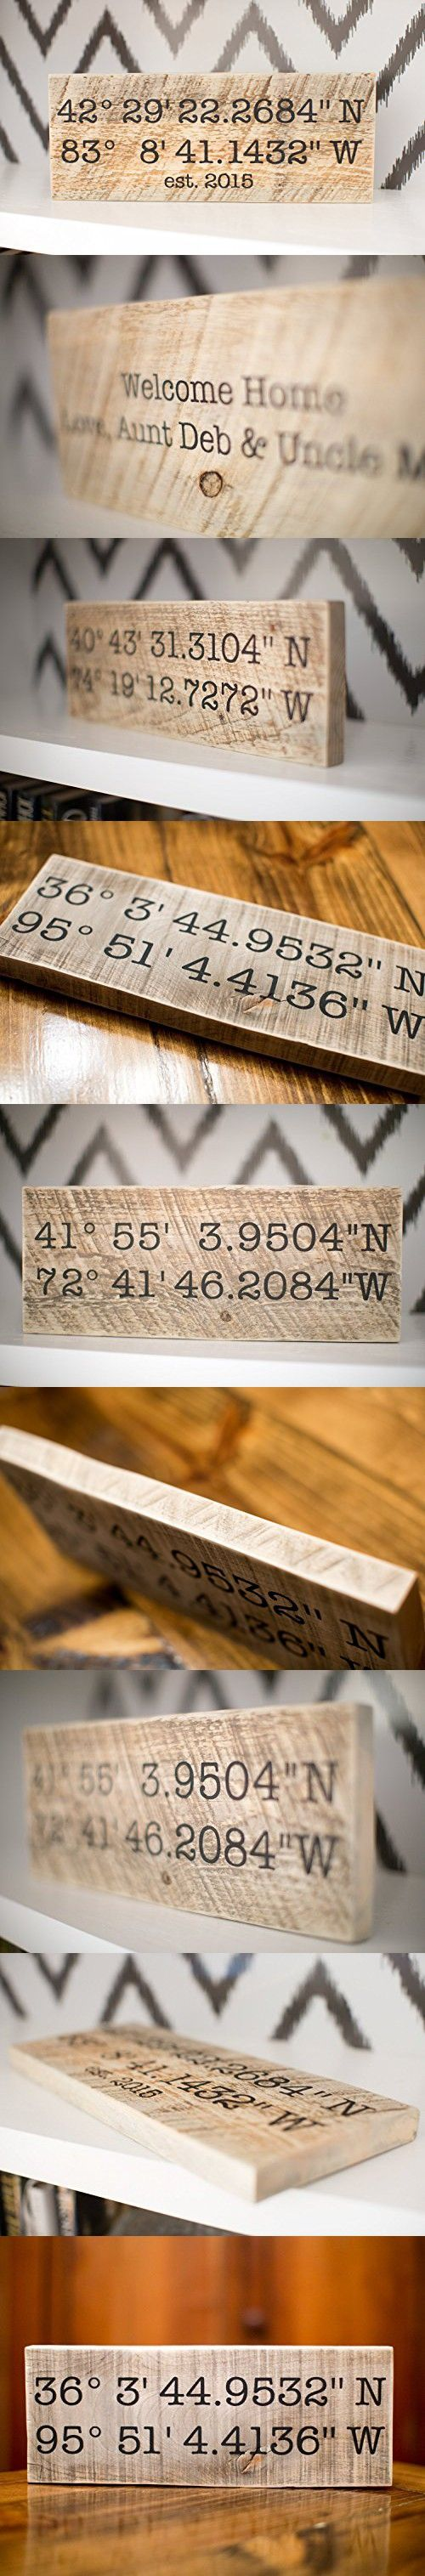 Latitude Longitude GPS Coordinates Sign | Wedding Gift | Home Decor Sign | House Warming Gift | New Home | Personalized Gift | Reclaimed | Wooden Personalized Signs